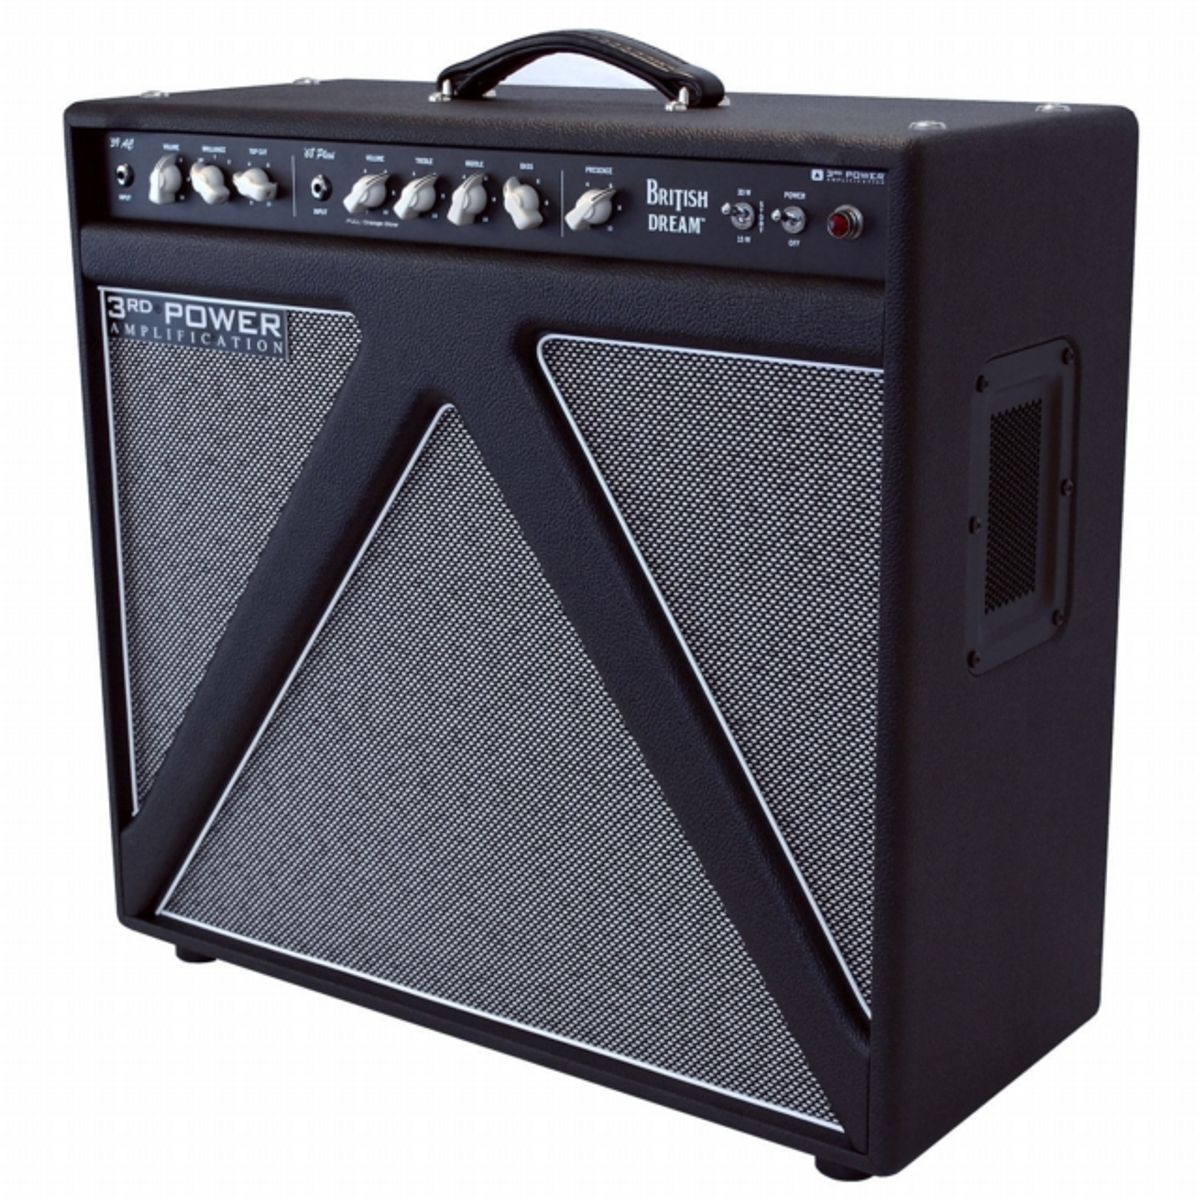 3rd Power Announces Updated British Dream and Dream Solo Amps